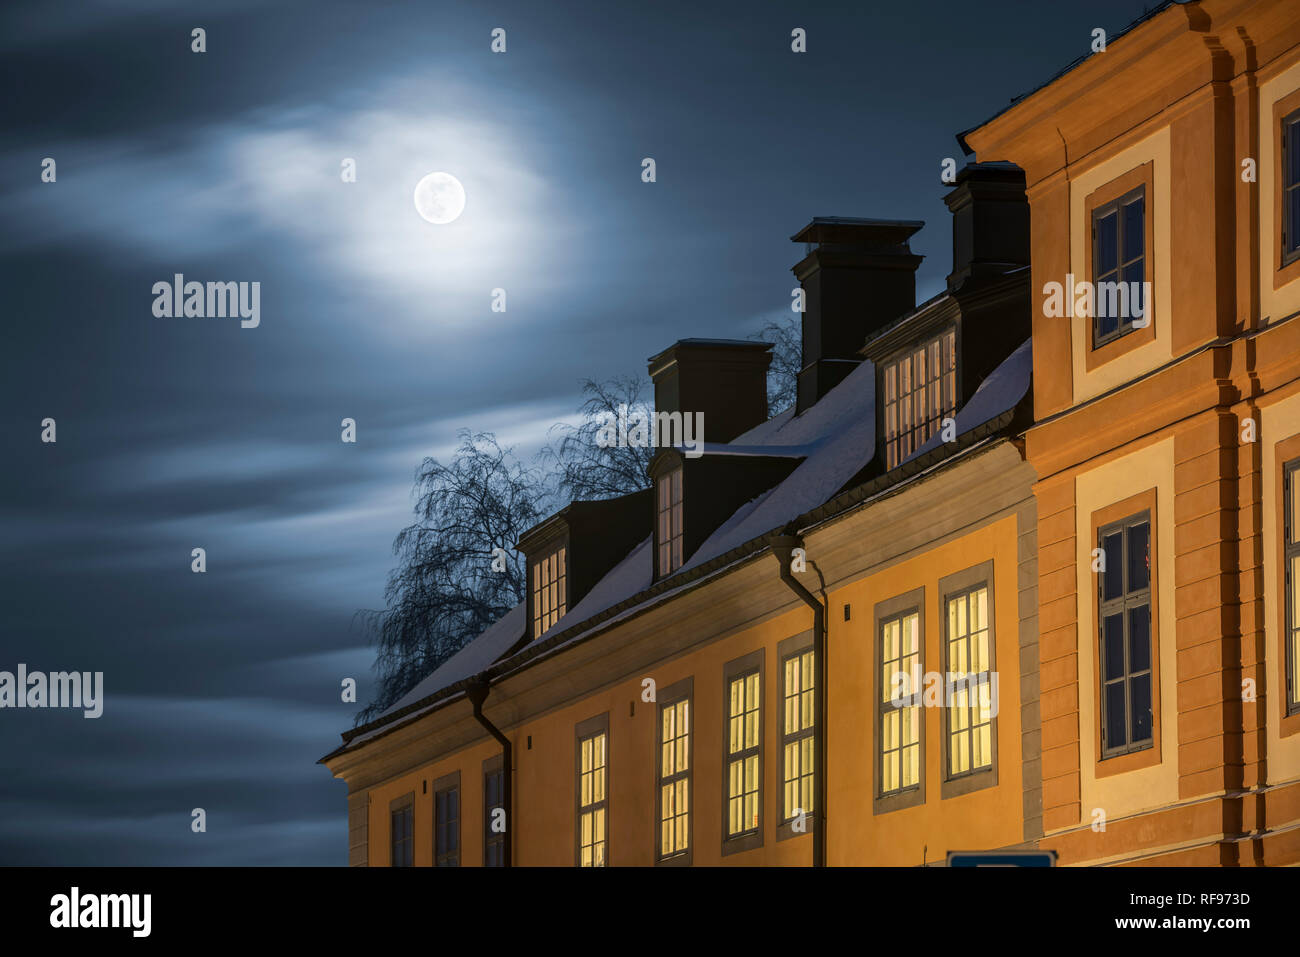 Full moon and old buildings in Central Uppsala, Sweden, Scandinavia. - Stock Image